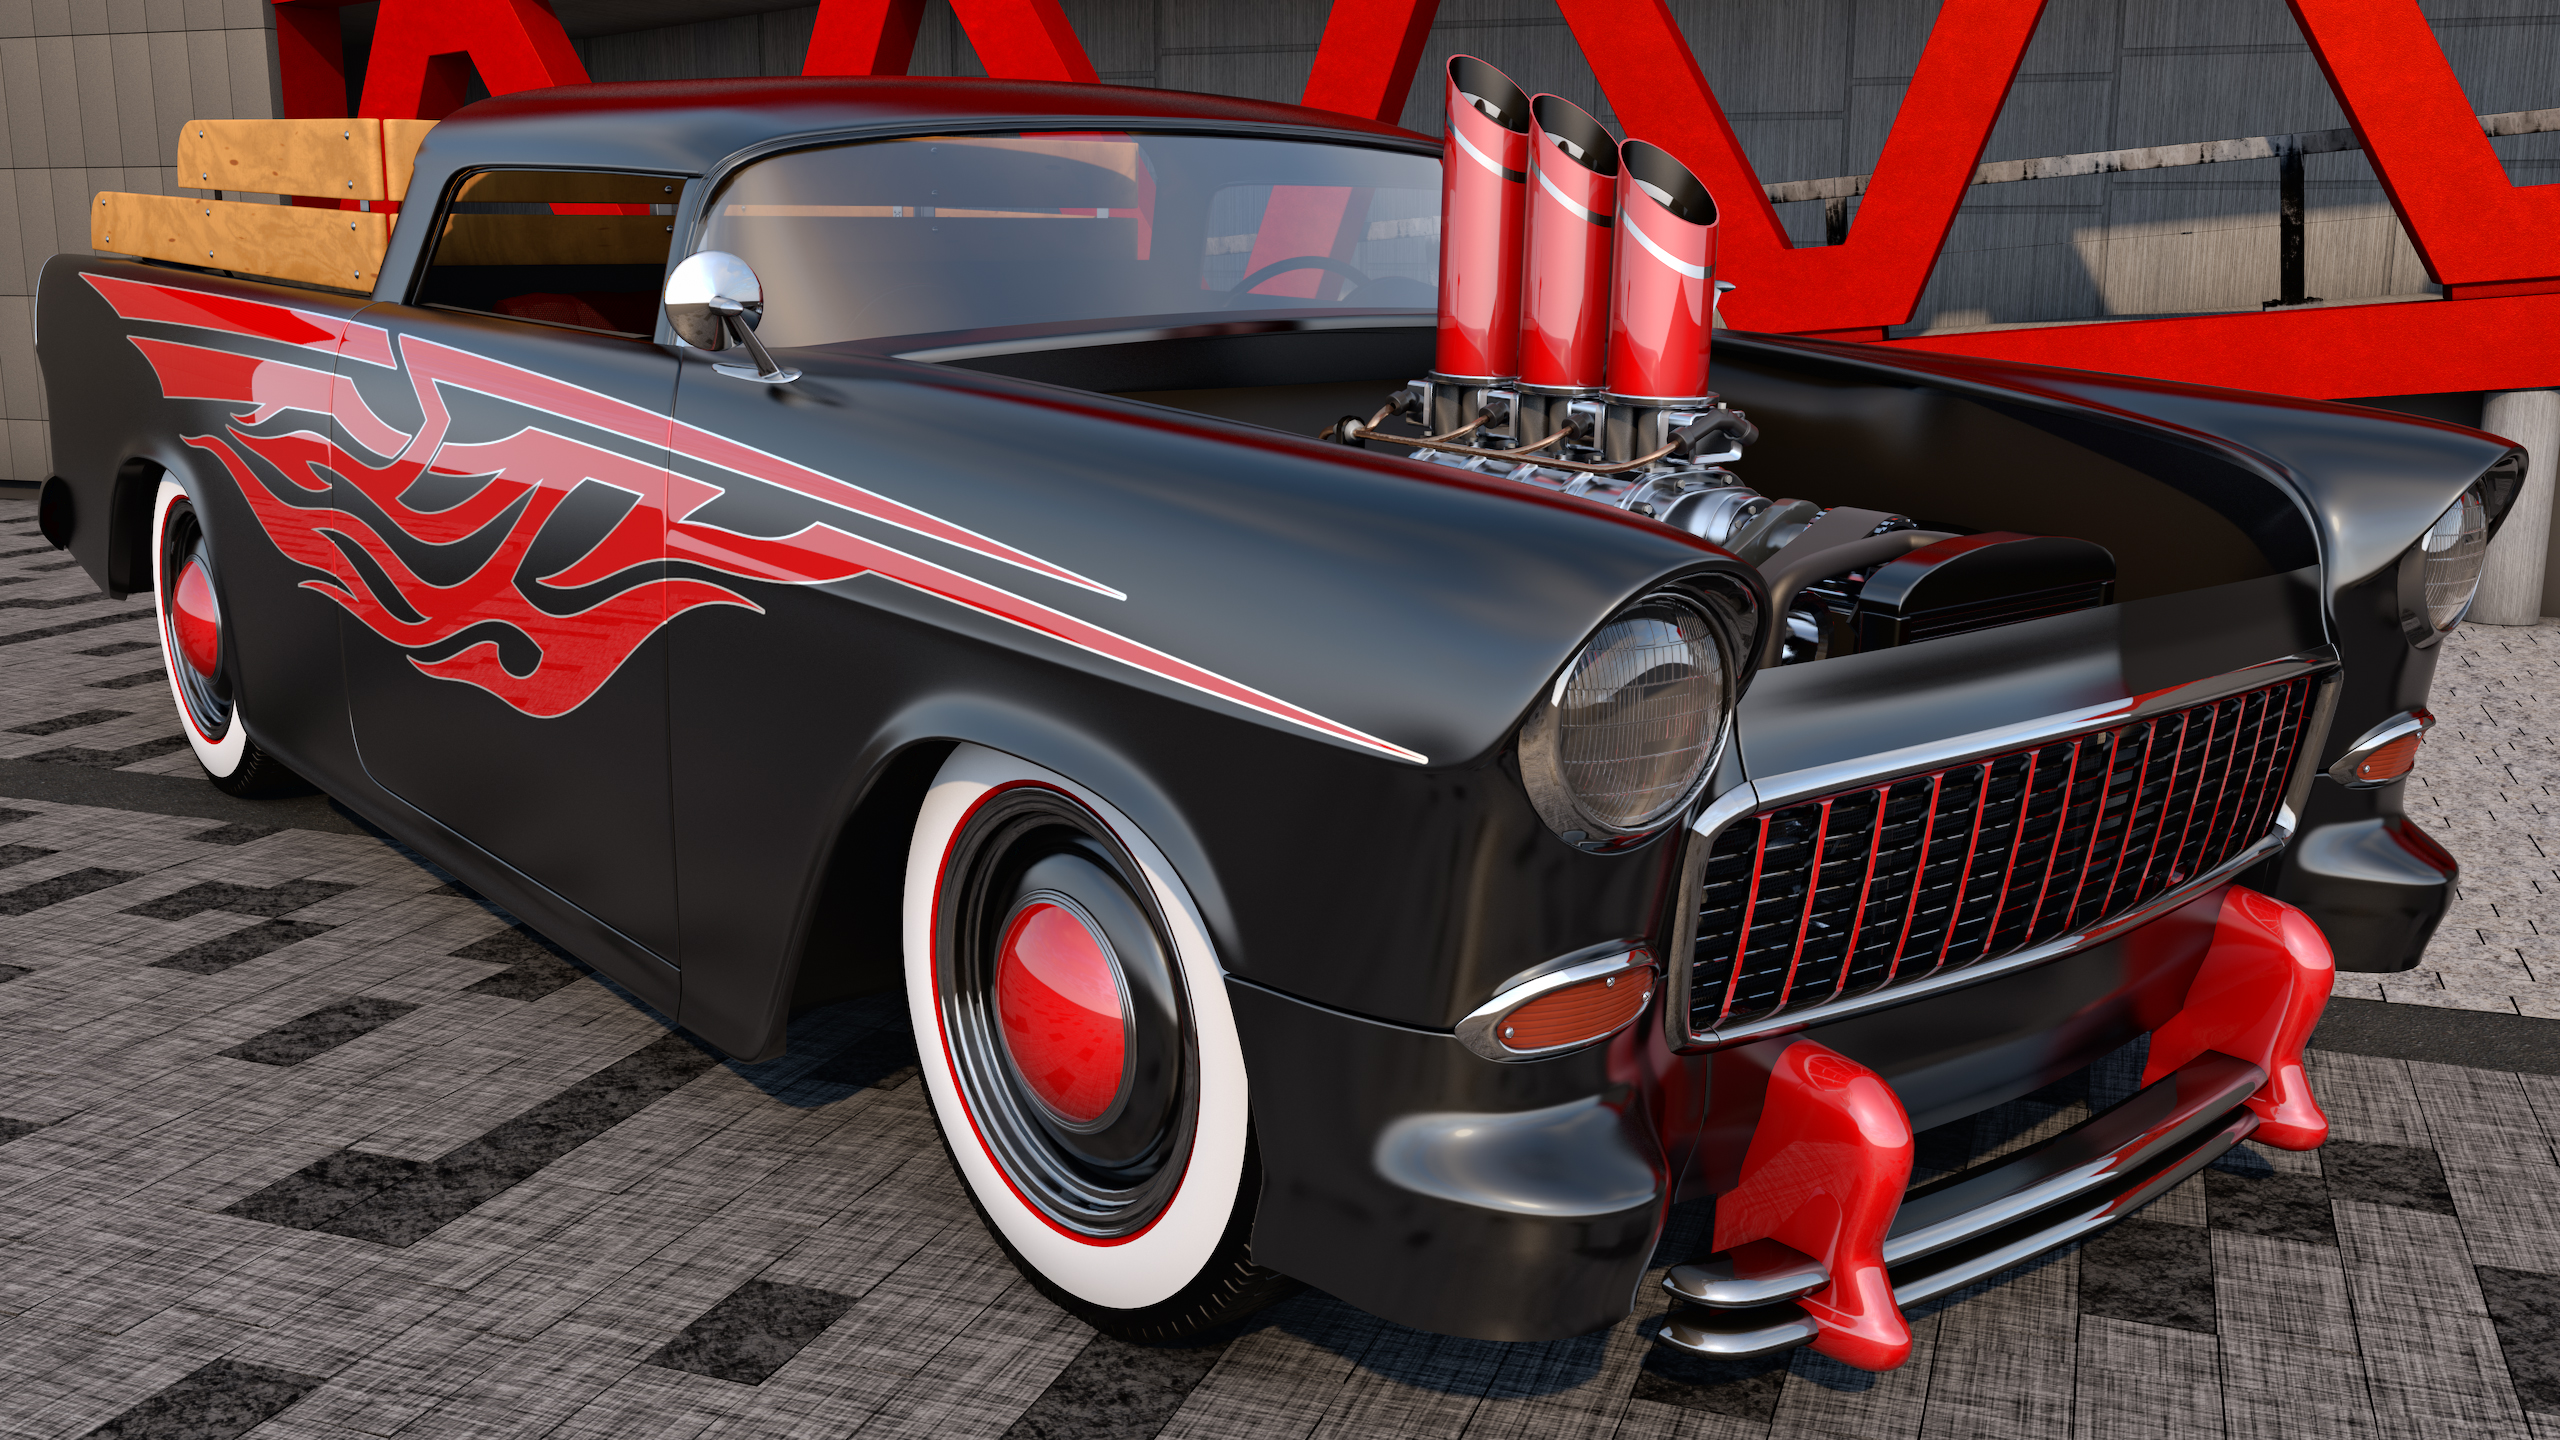 1956 bel air for sale submited images -  1955 Chevrolet Bel Air Nomad Custom By Samcurry